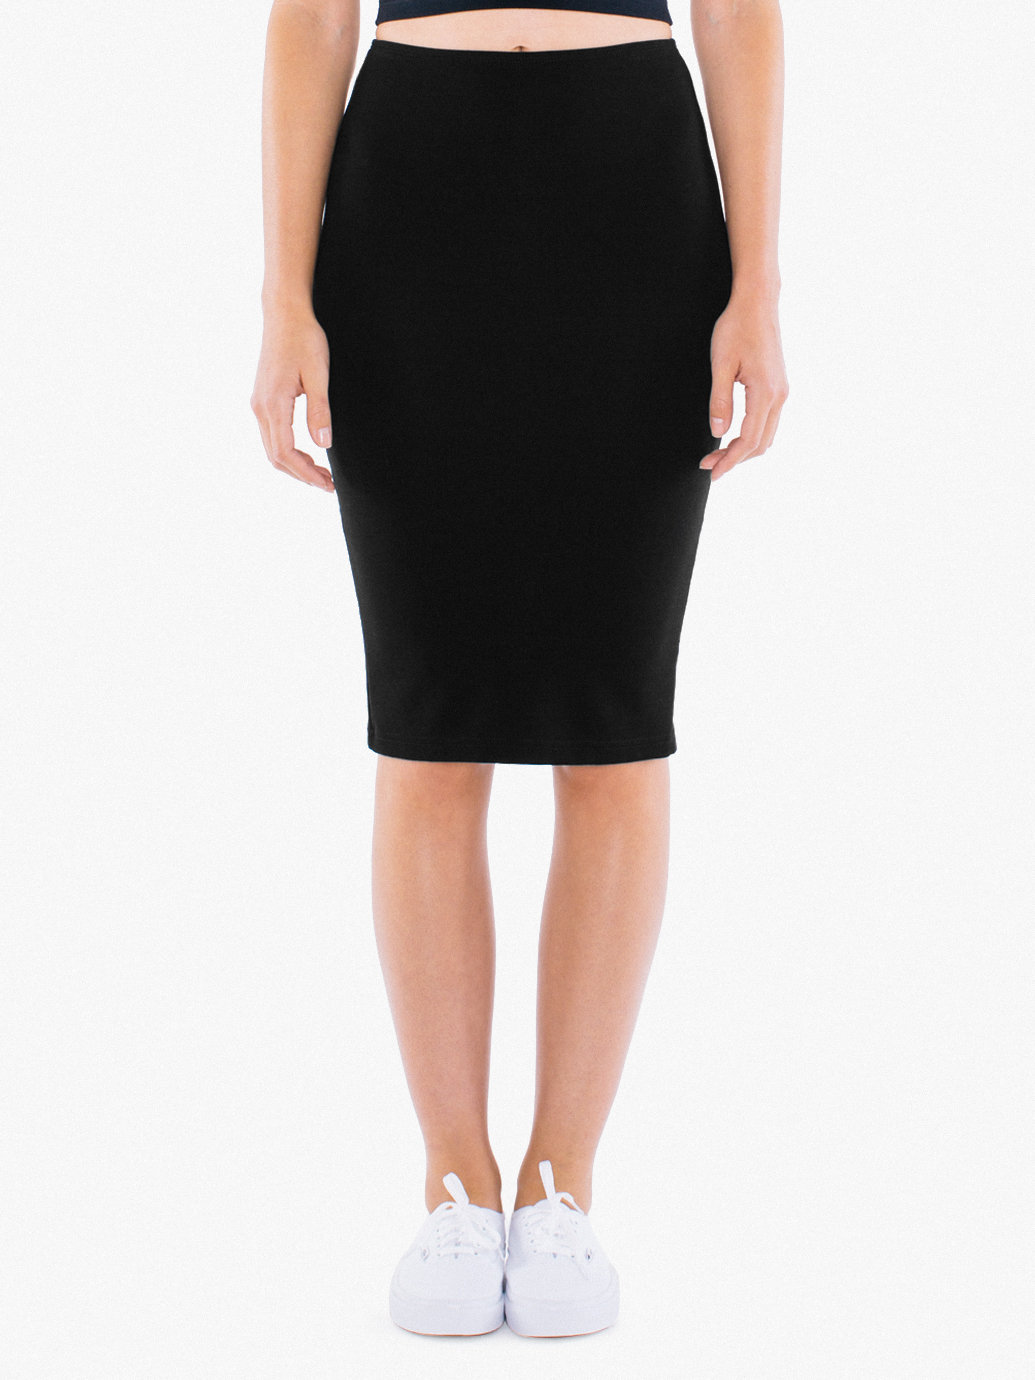 3504d704a6a3 Ponte Mid-Length Pencil Skirt. rsa0387w. $38.00. Product Gallery Element